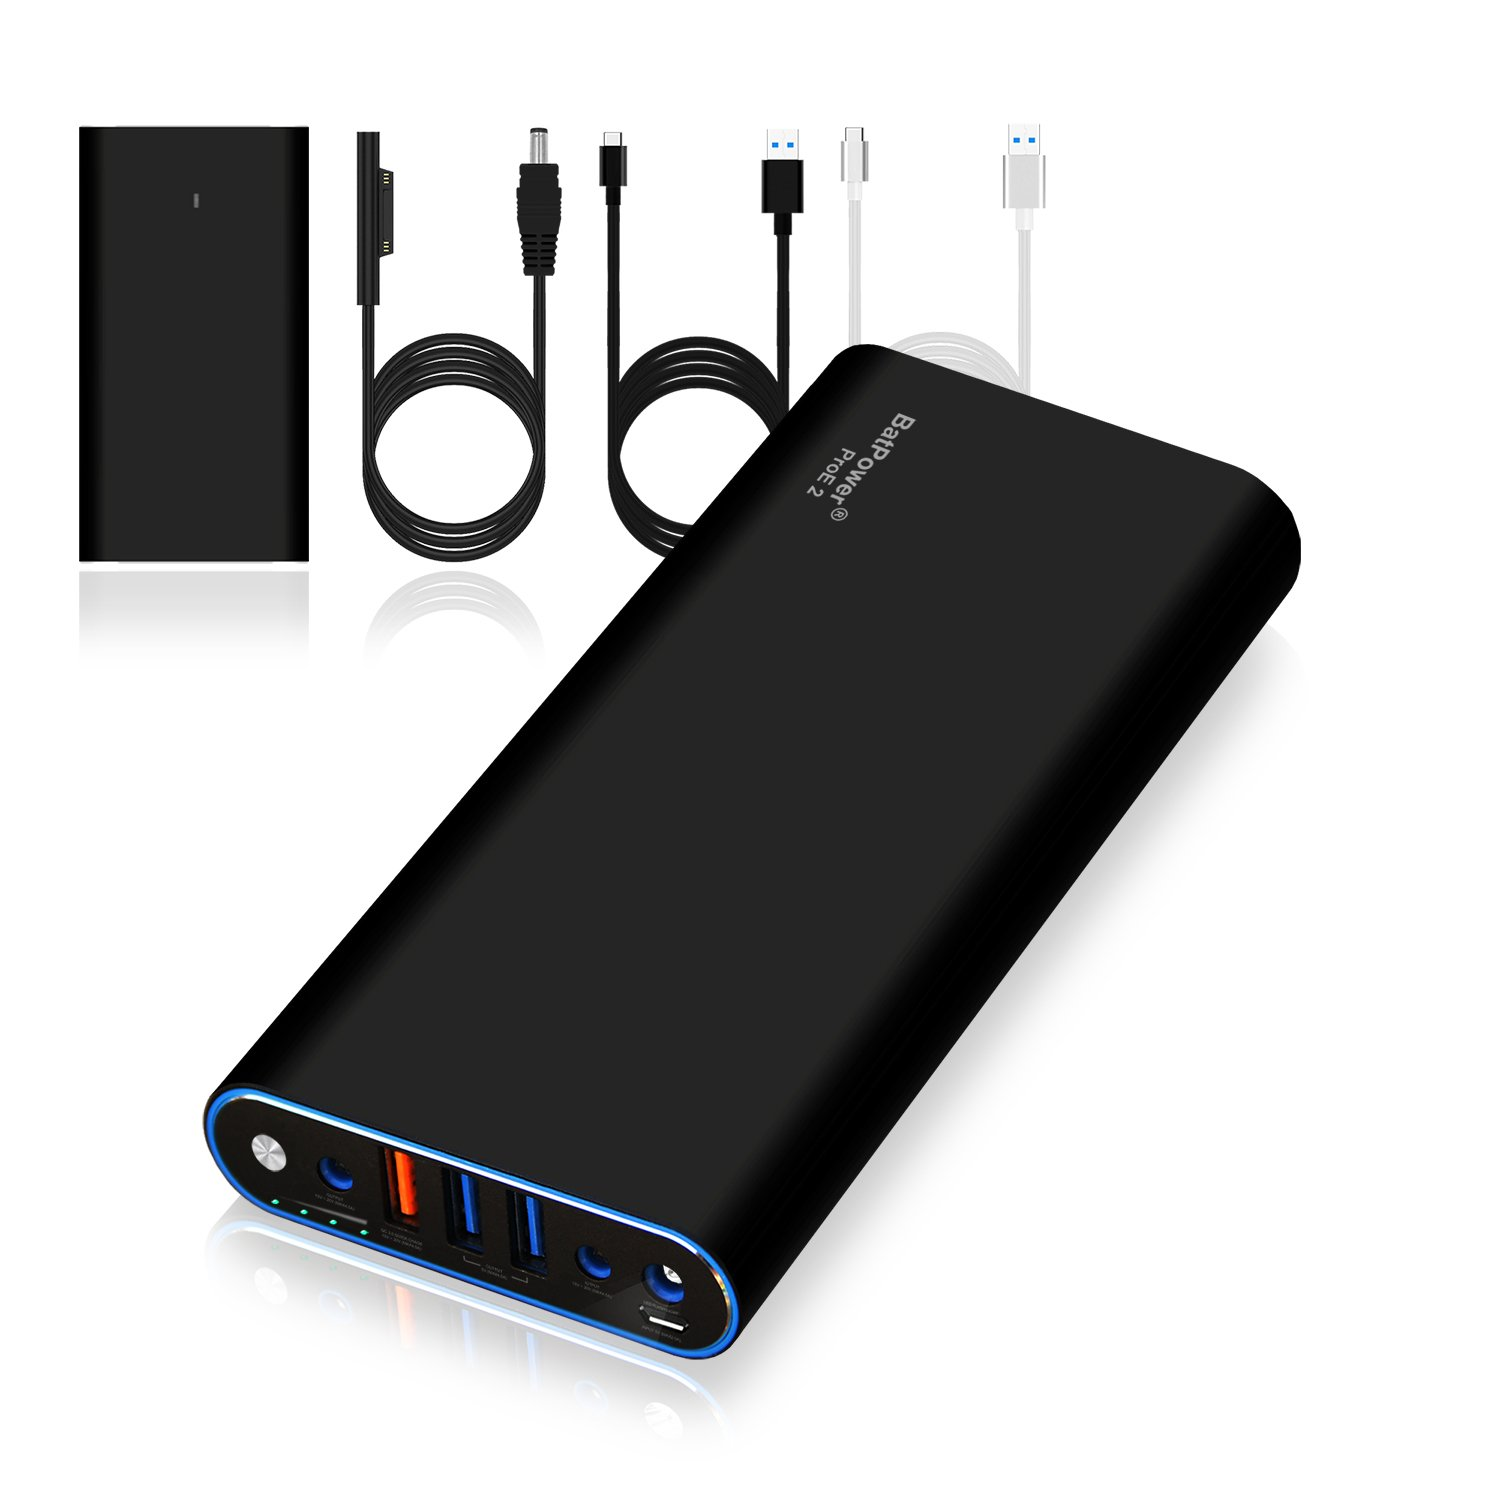 BatPower ProE 2 ES10B Portable Charger External Battery Power Bank for  Surface Laptop, Surface Book, Book 2, Surface Pro 4/3 / 2 and RT, USB QC  3 0